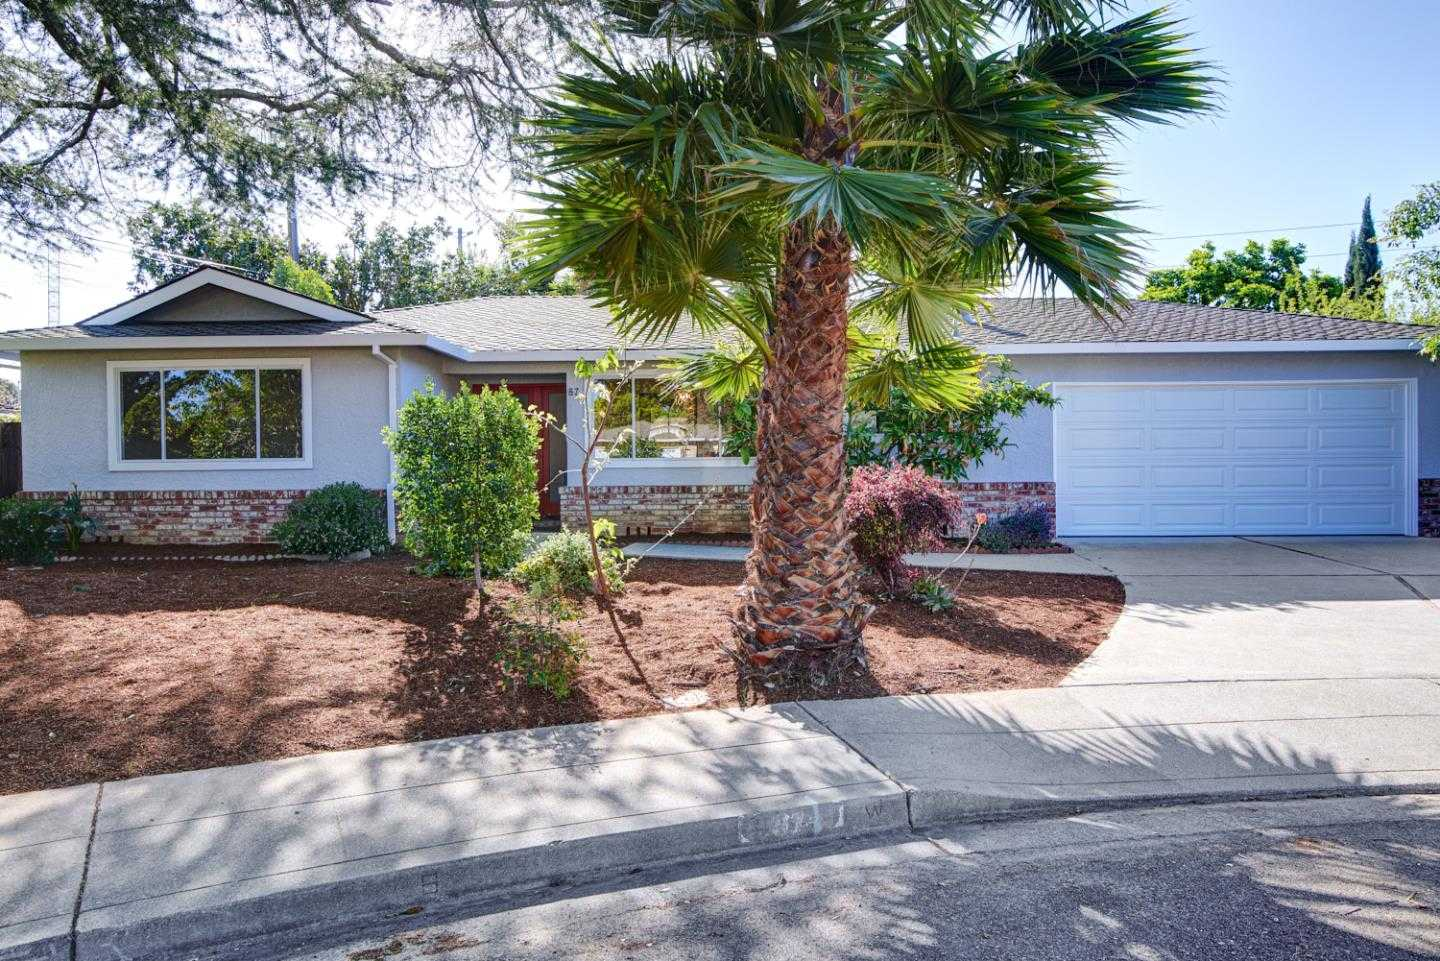 $1,989,000 - 2Br/1Ba -  for Sale in Mountain View